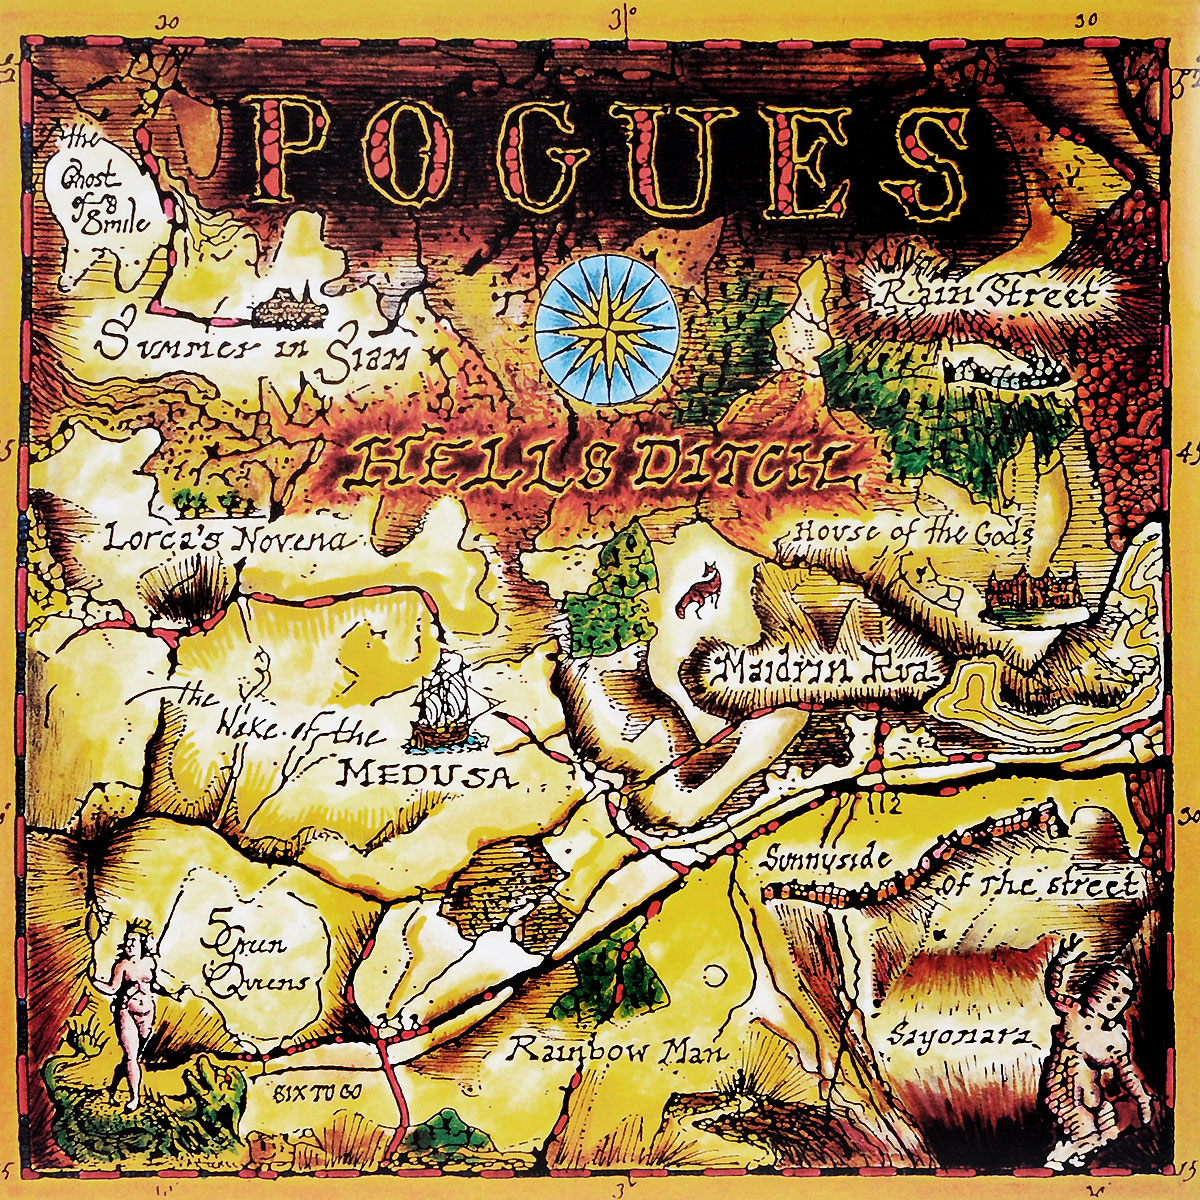 the pogues peace and love lp The Pogues Pogues. Hell's Ditch (LP)